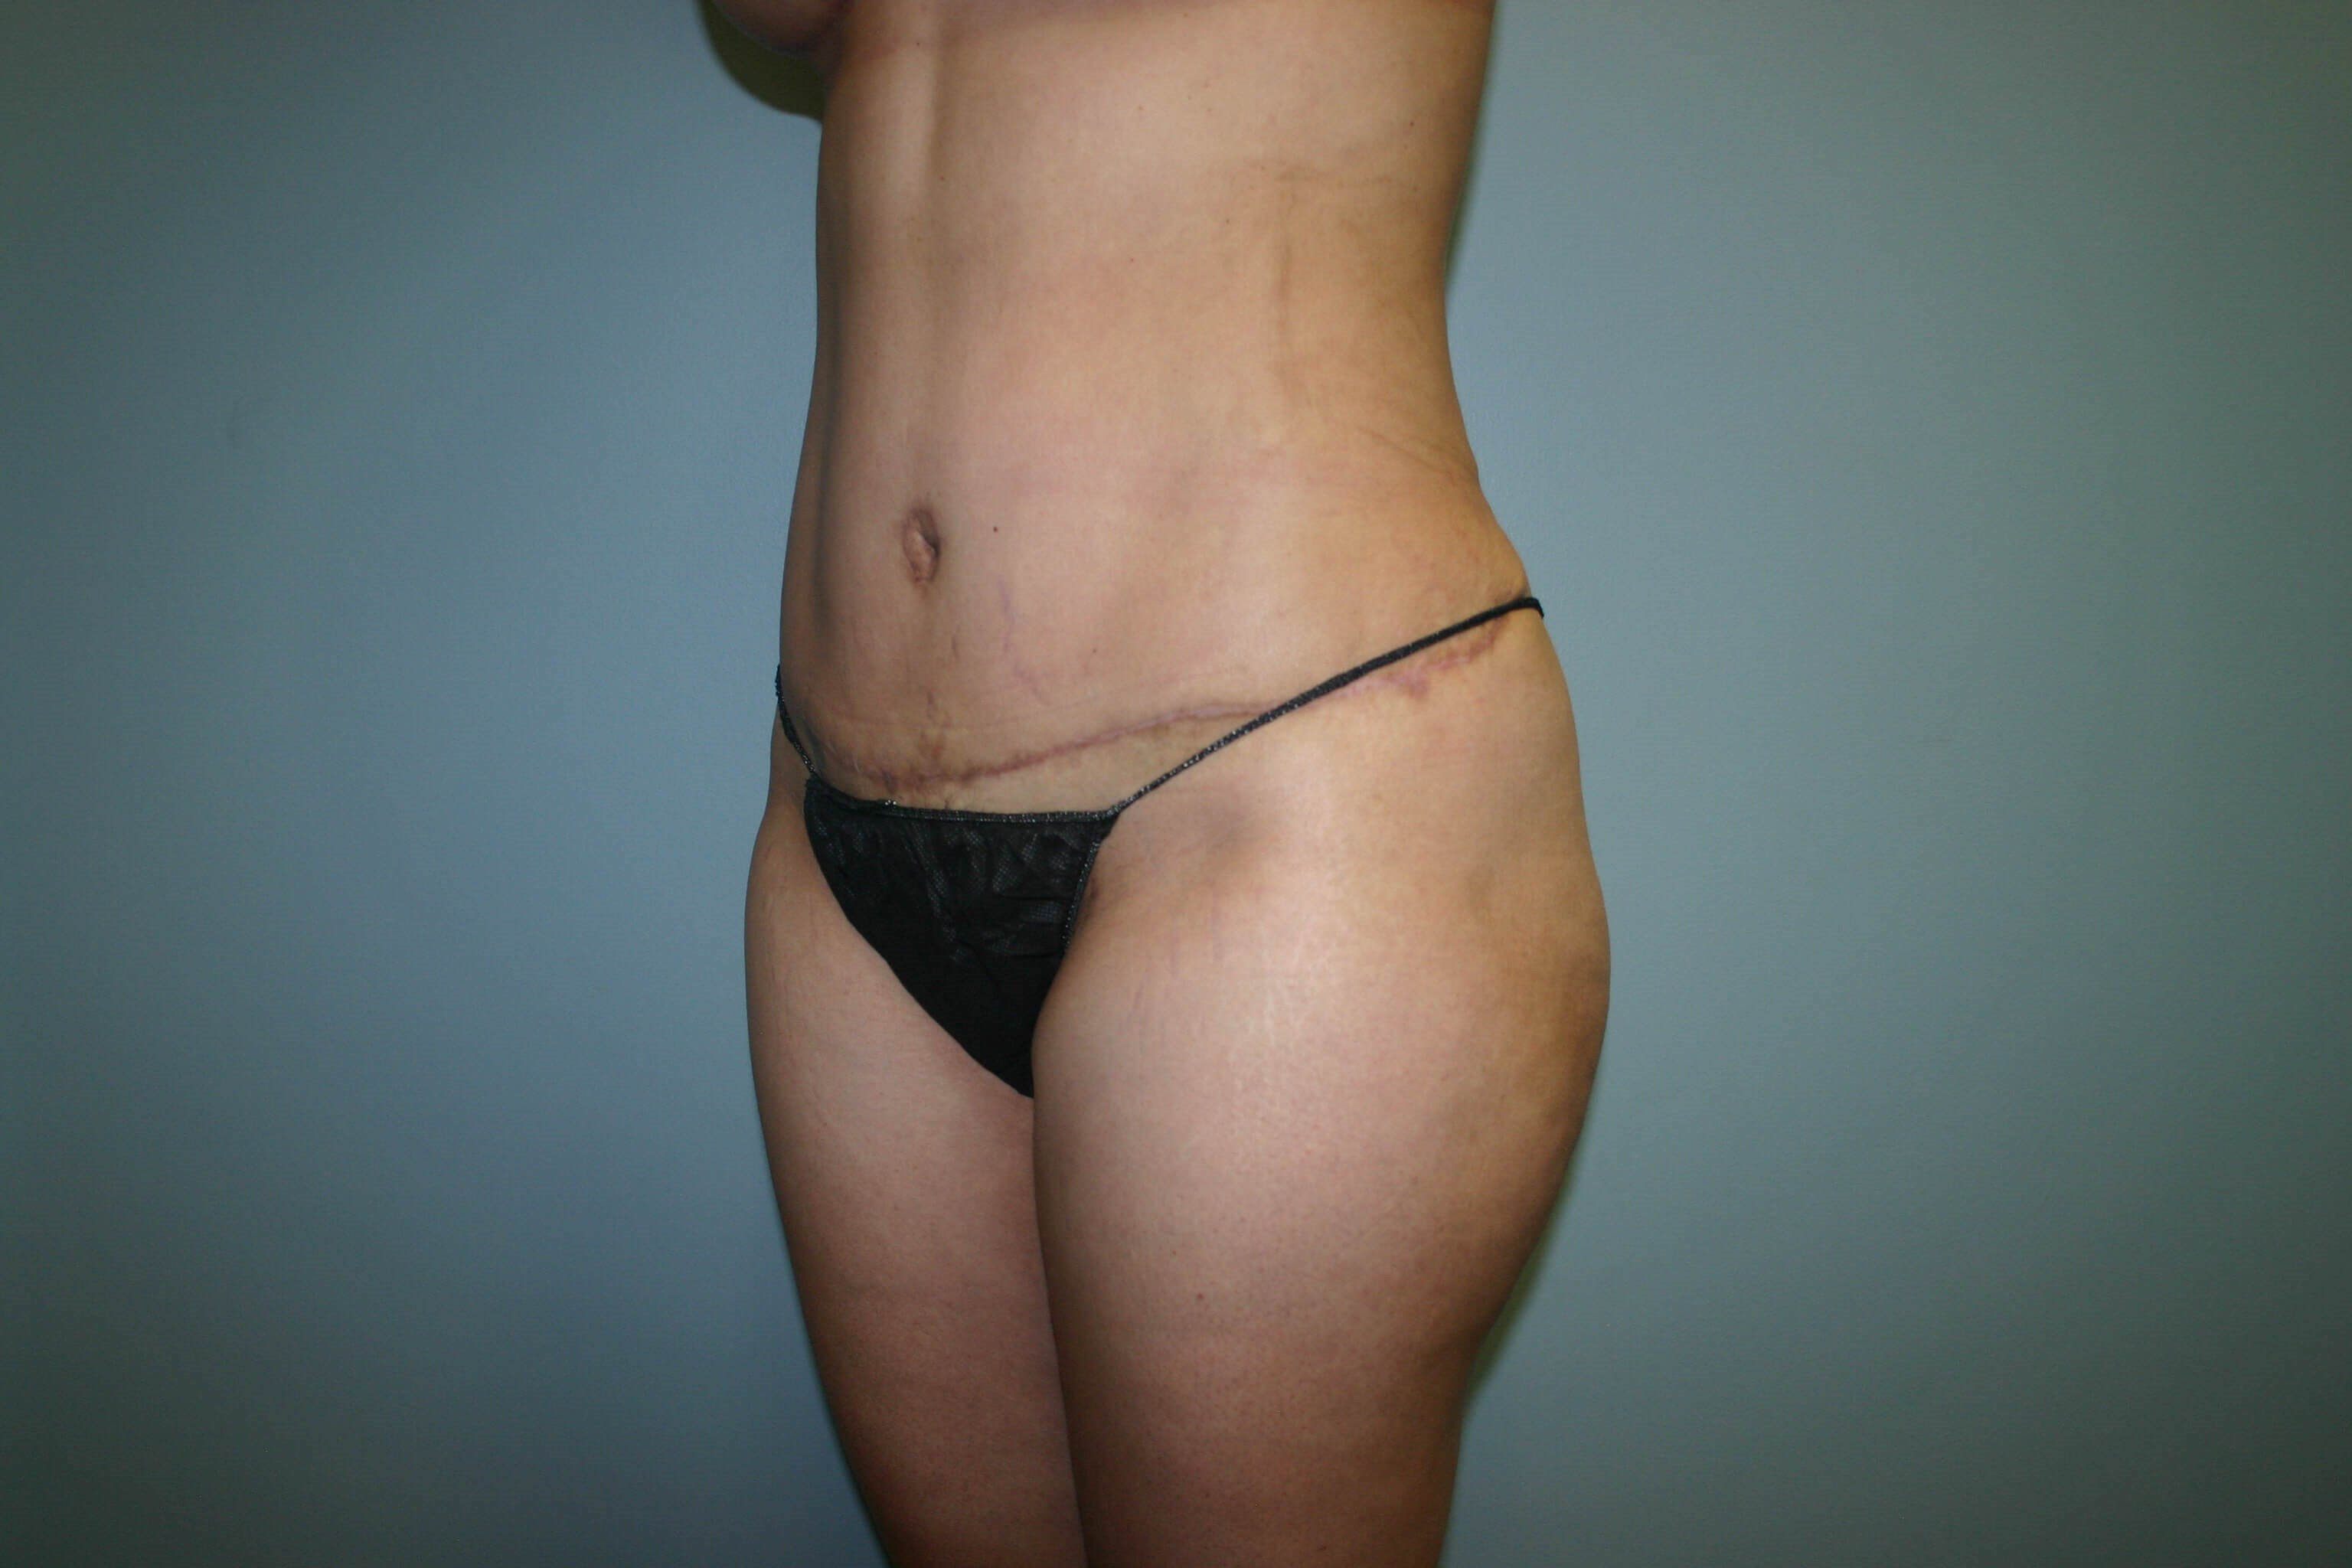 Oblique View After - 3 Months